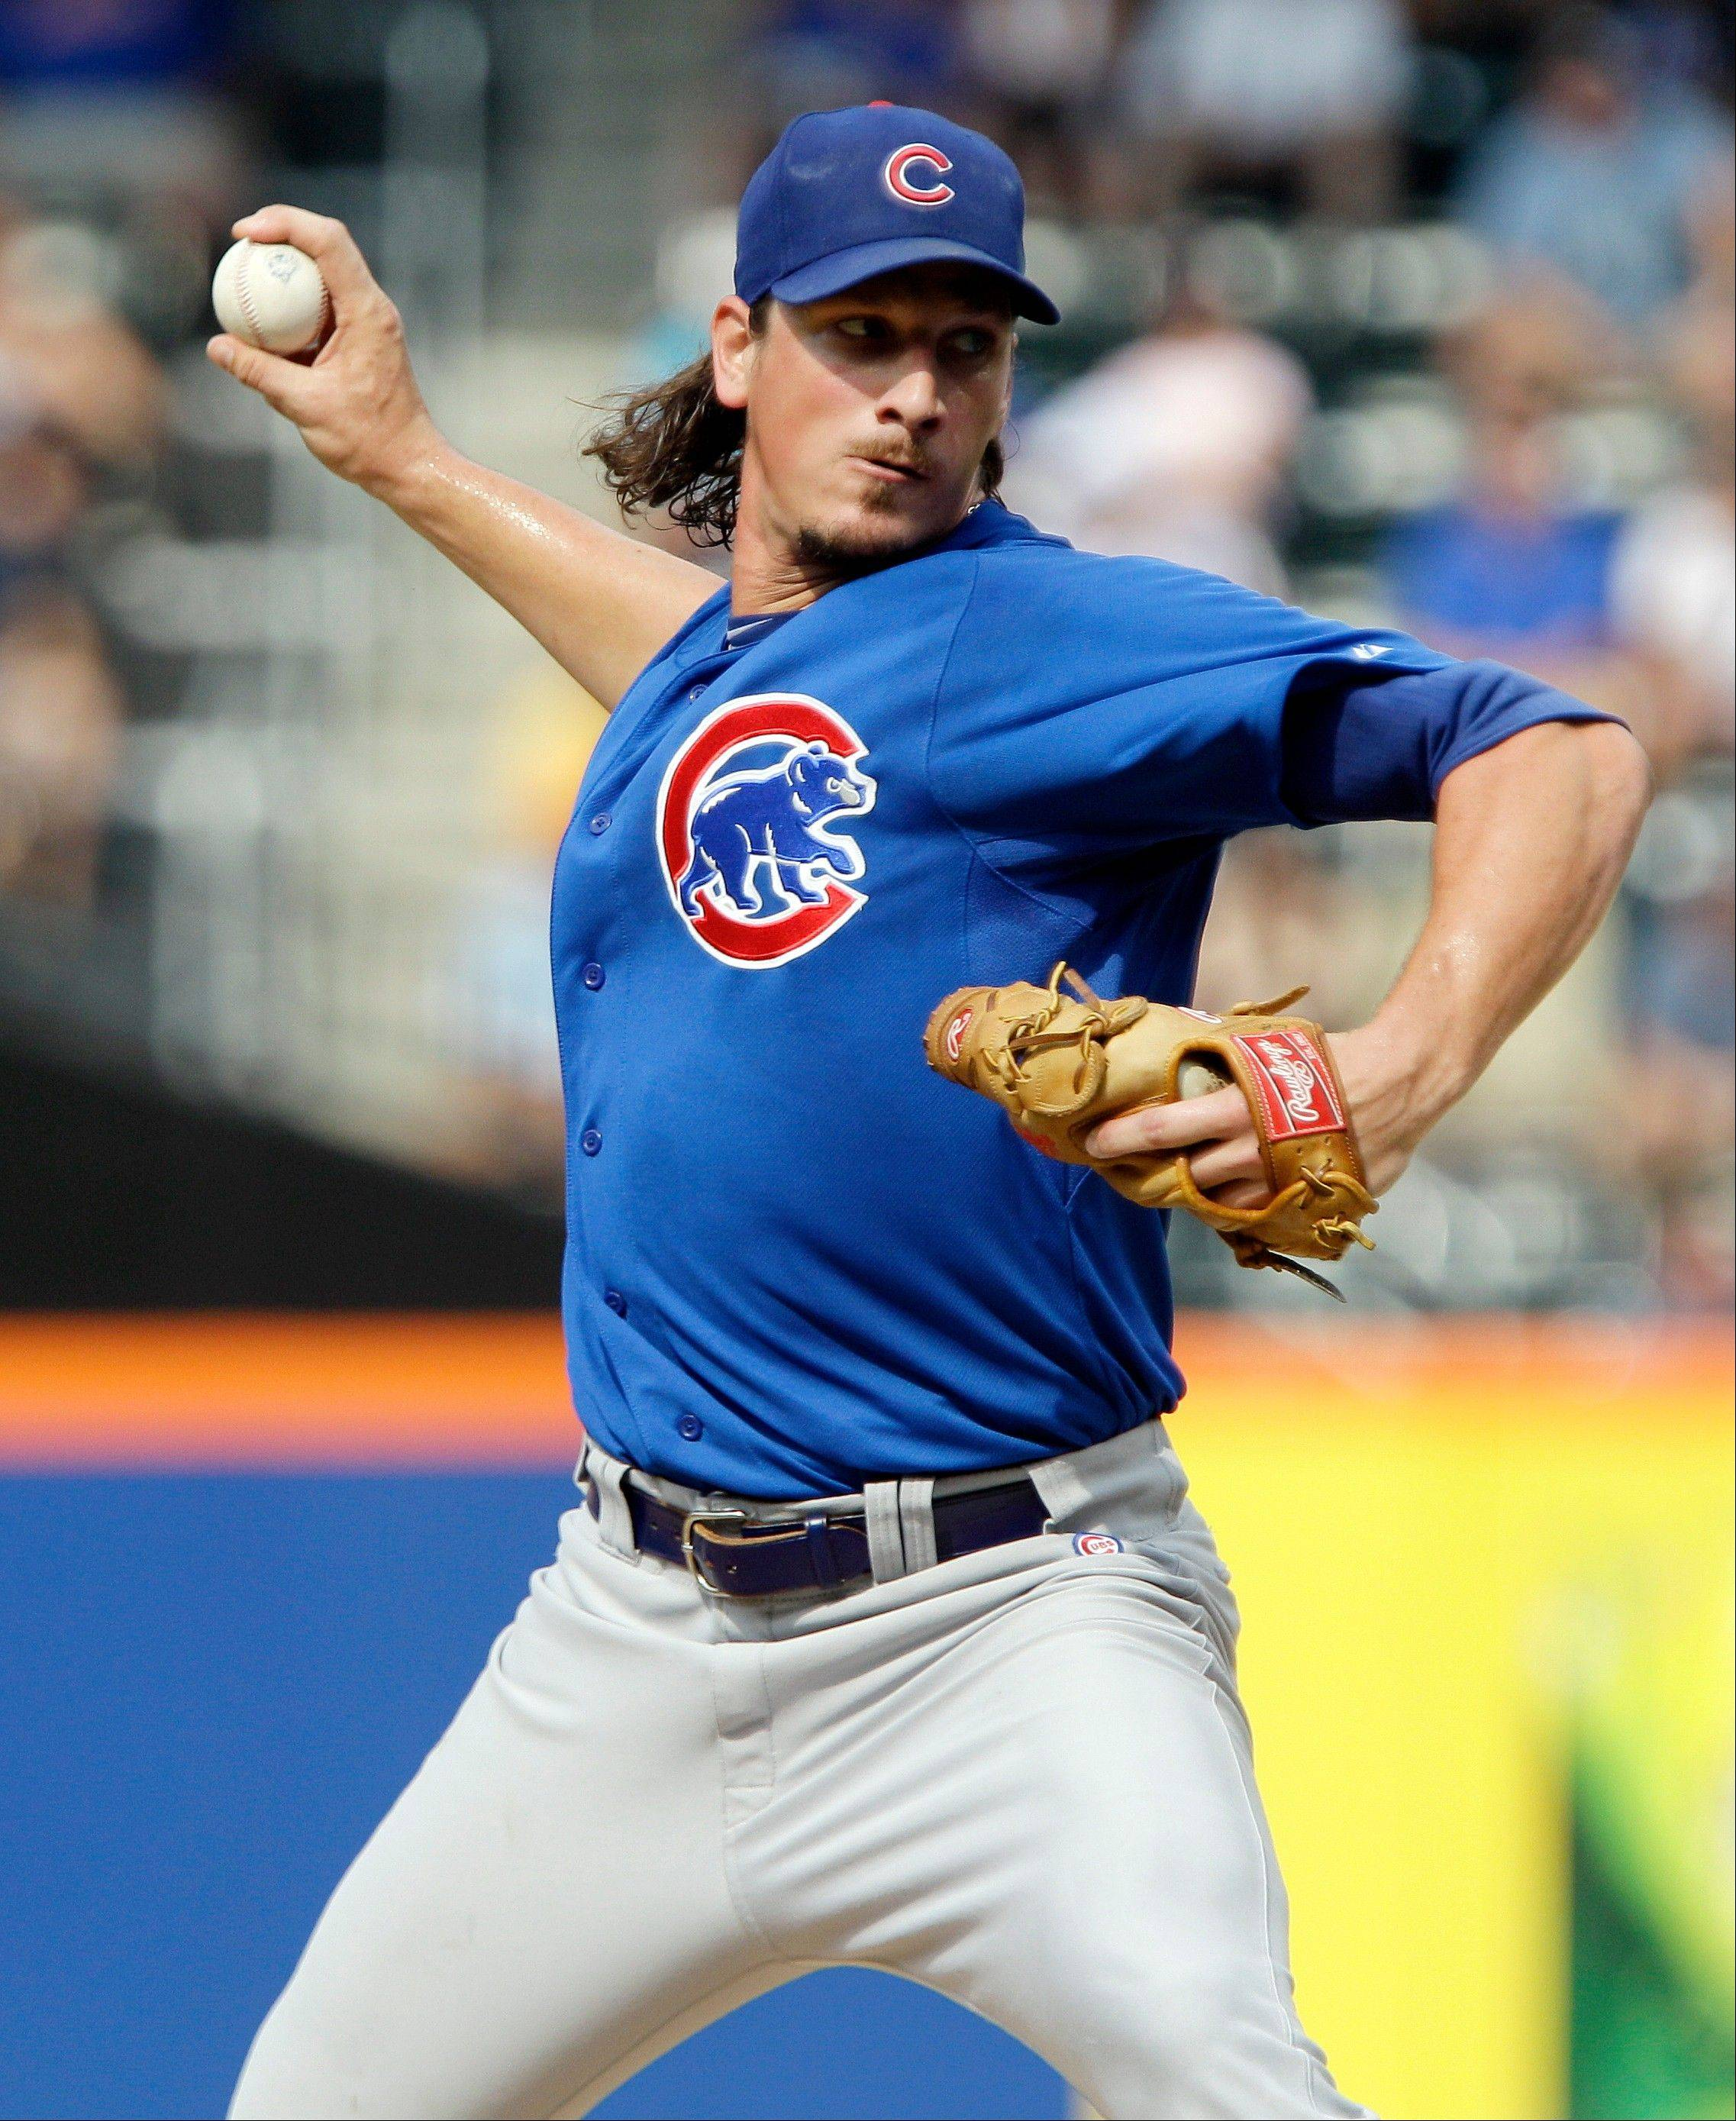 Cubs' Samardzija gets back to work tonight